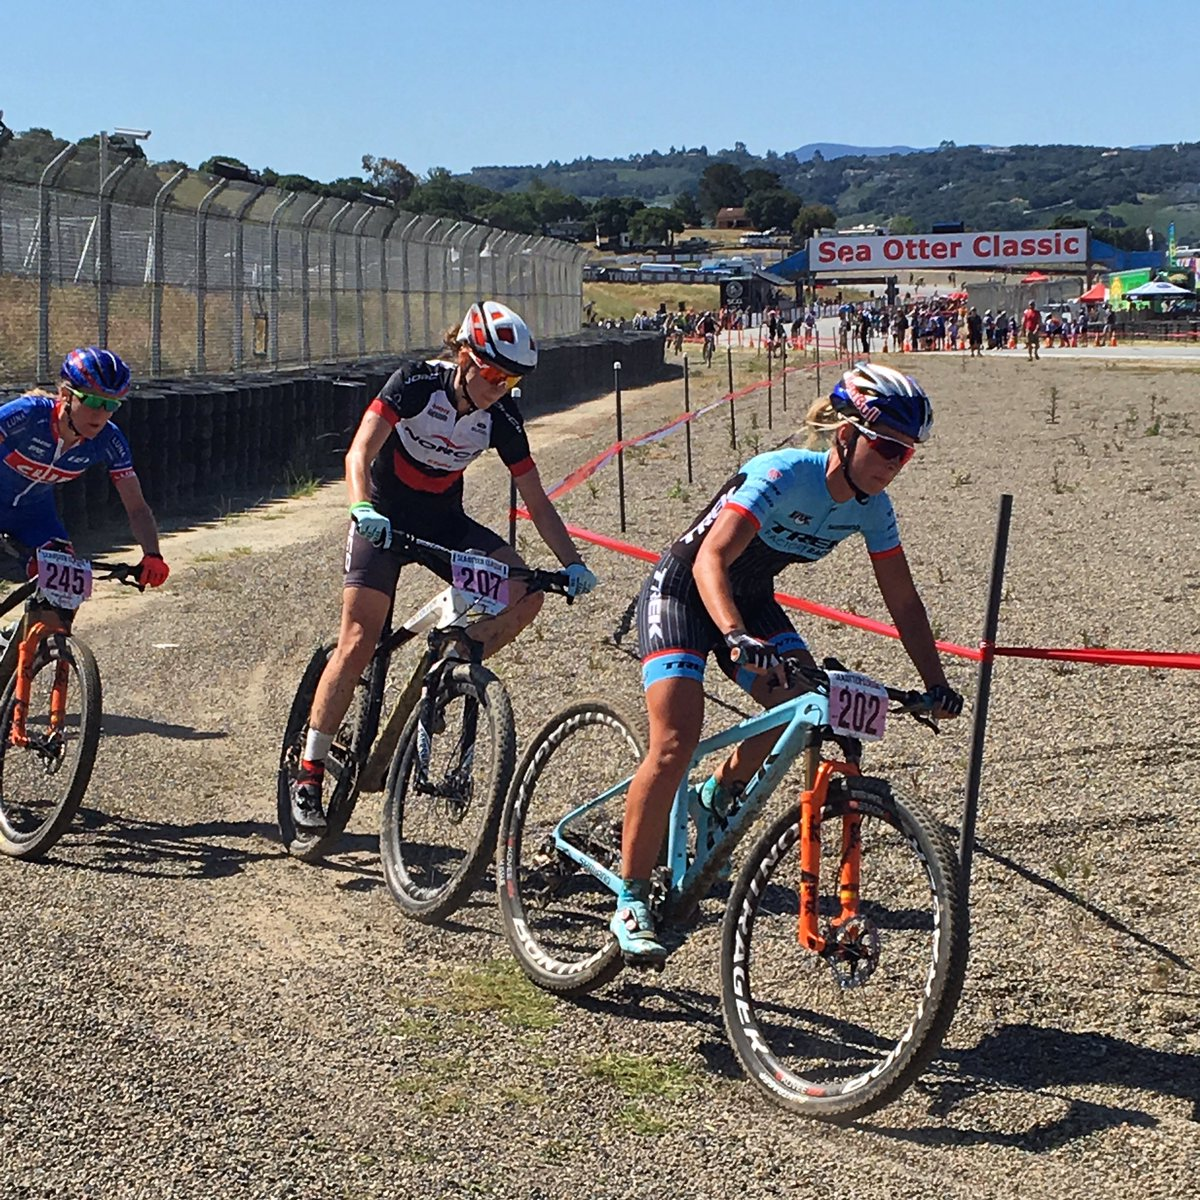 test Twitter Media - Website officially opens this Wednesday on November 1st, 2017. Register for racing and camping! Grab your festival passes. #seaotterclassic https://t.co/sO7VYtTIfb